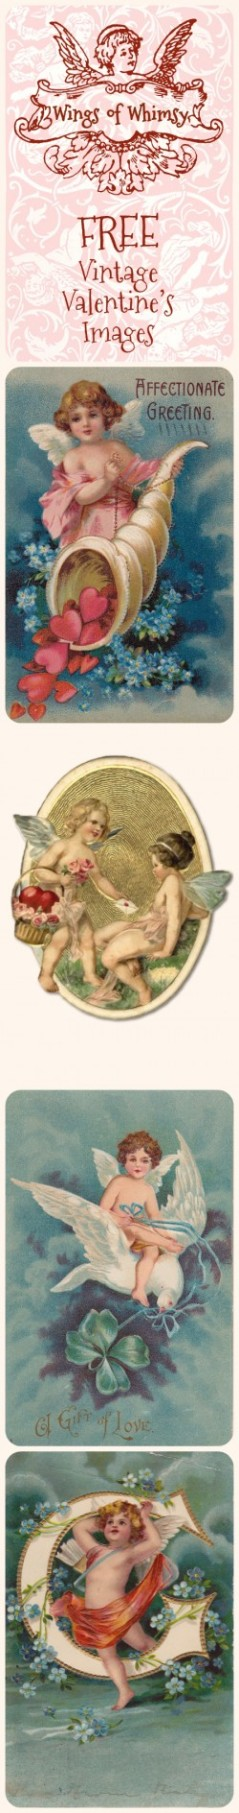 Wings of Whimsy: Vintage Valentine Cherubs Pinfographic